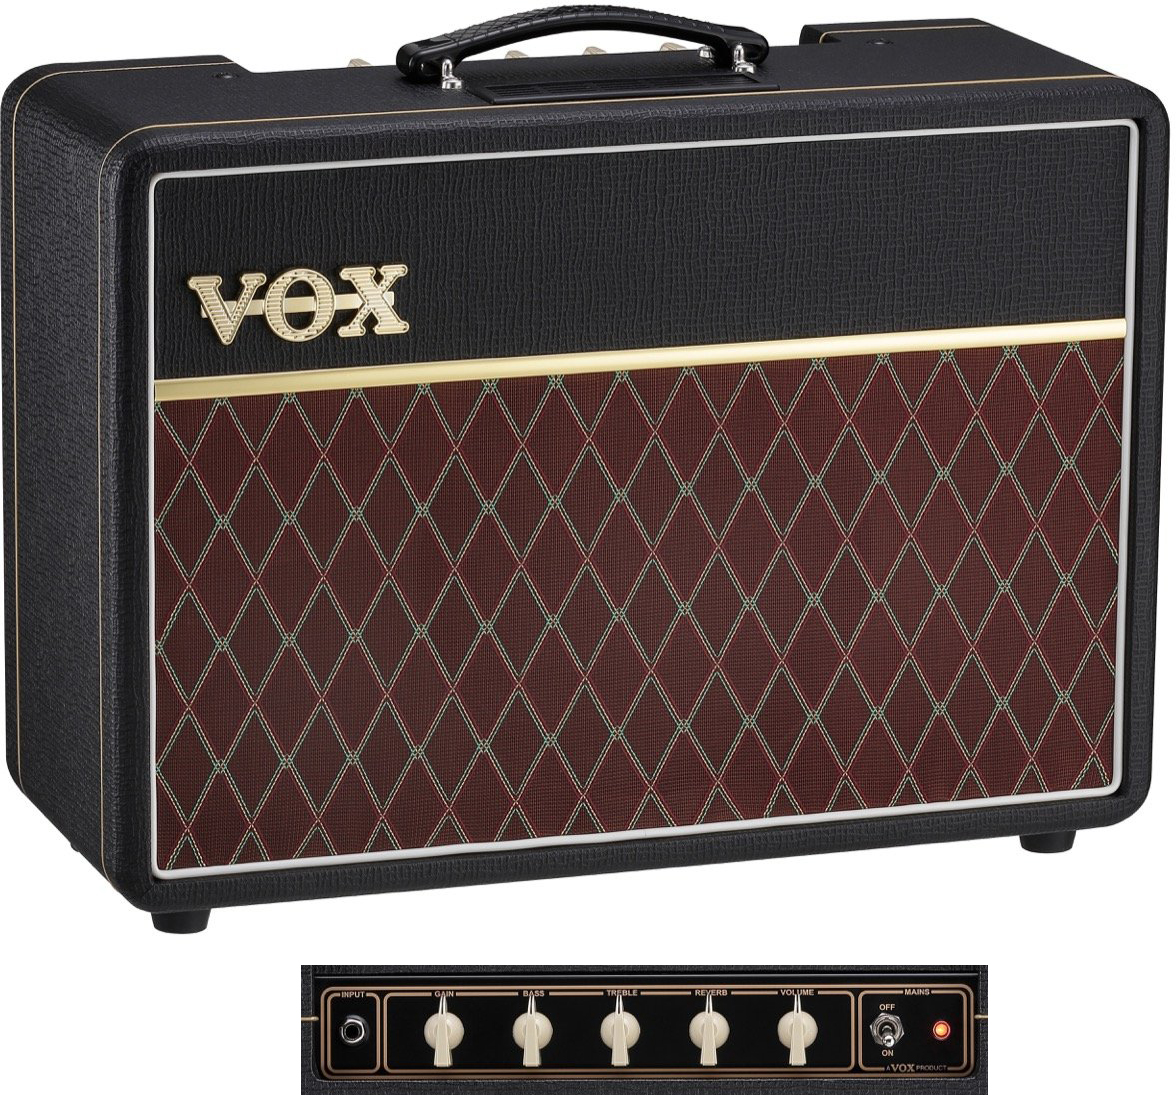 The Best Guitar Amps Under 500 Combo 2018 Gearank Low Amplifier Is Intended To Be Used In Conjunction With An Electric Get